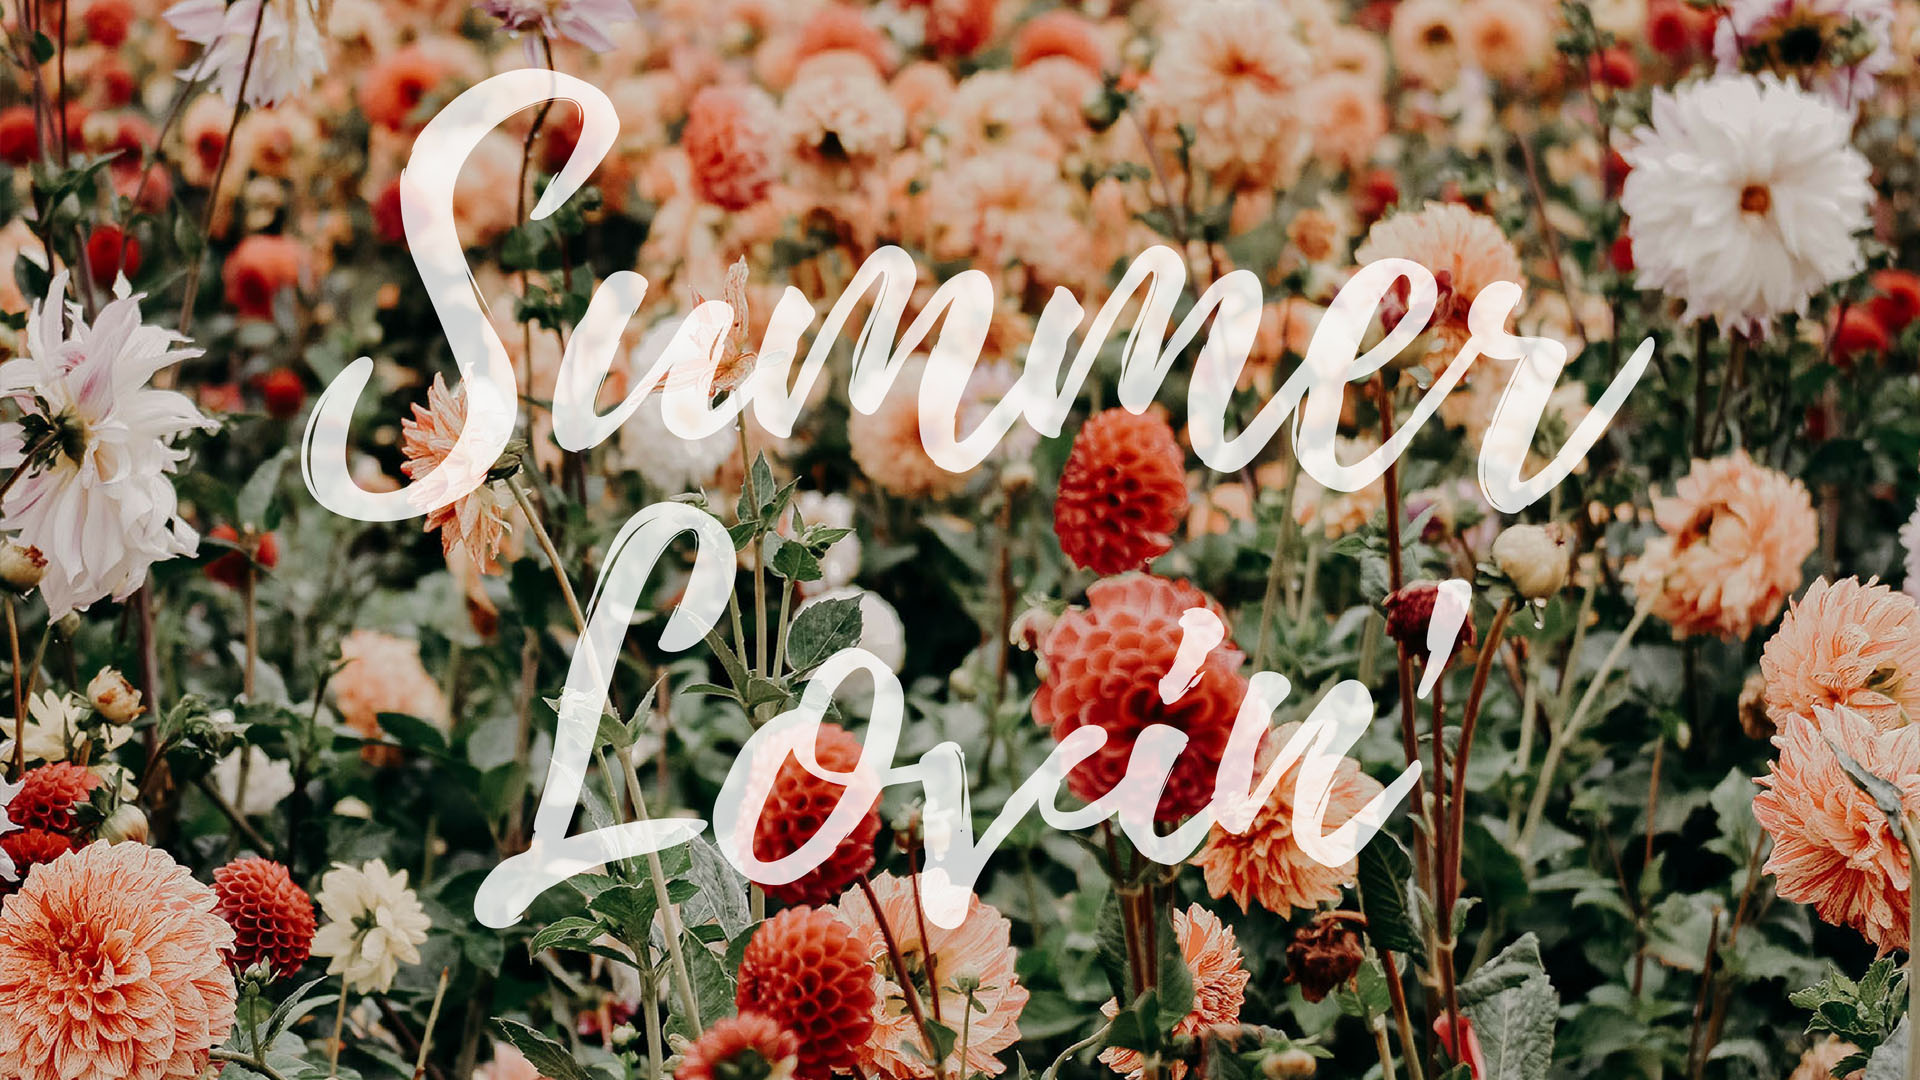 Summer Lovin' Quote Desktop + Mac Wallpaper by preppywallpapers.com